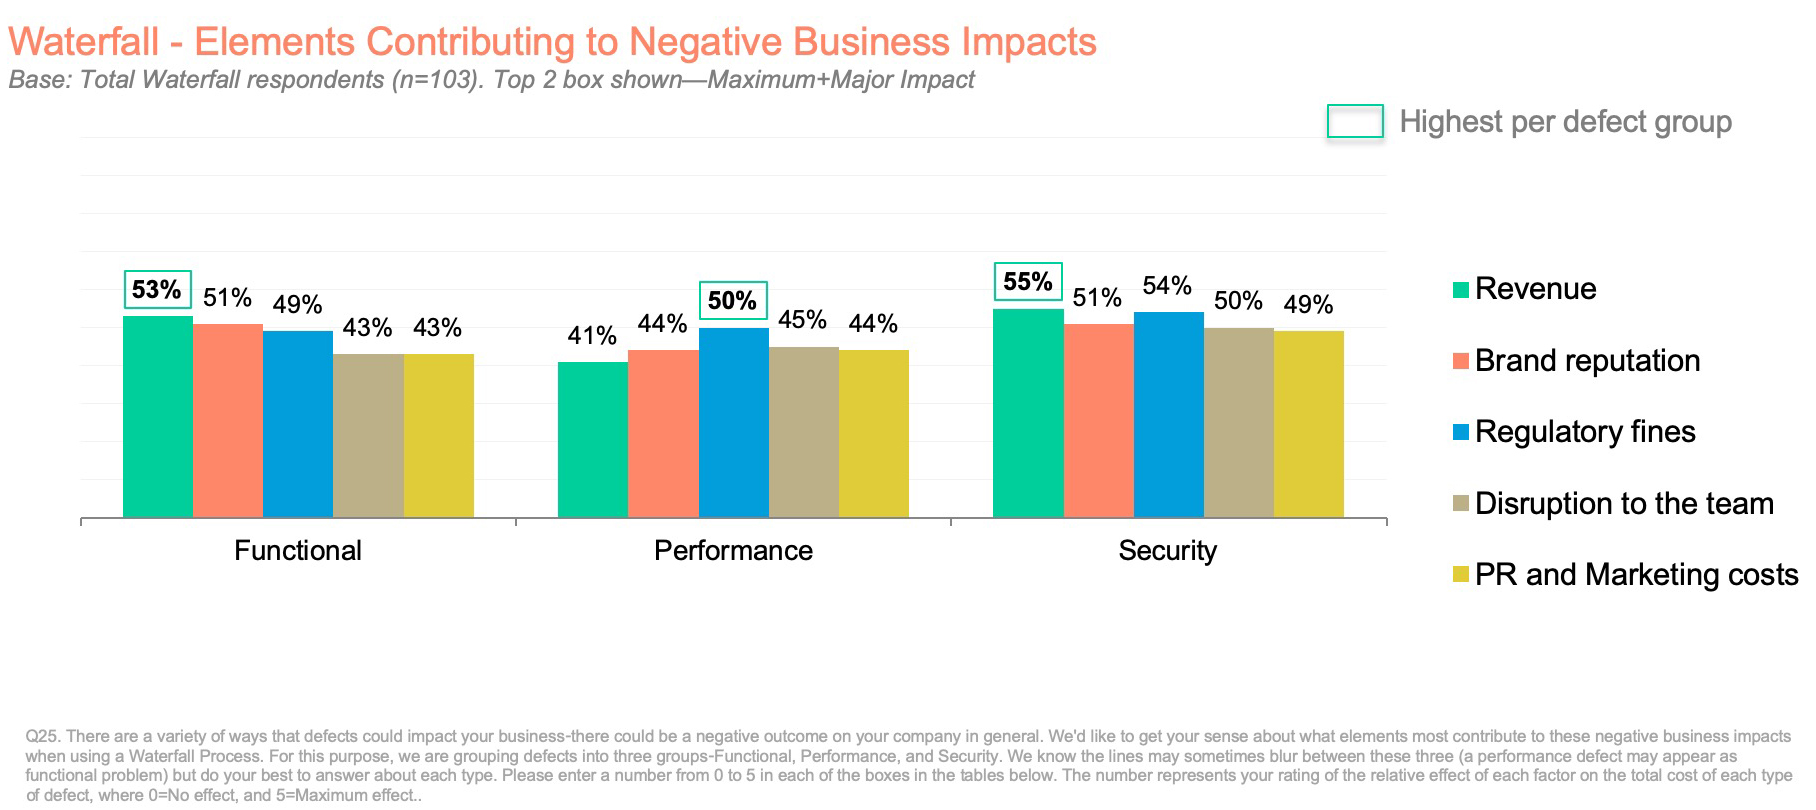 Waterfall - Elements Contributing to Negative Business Impacts